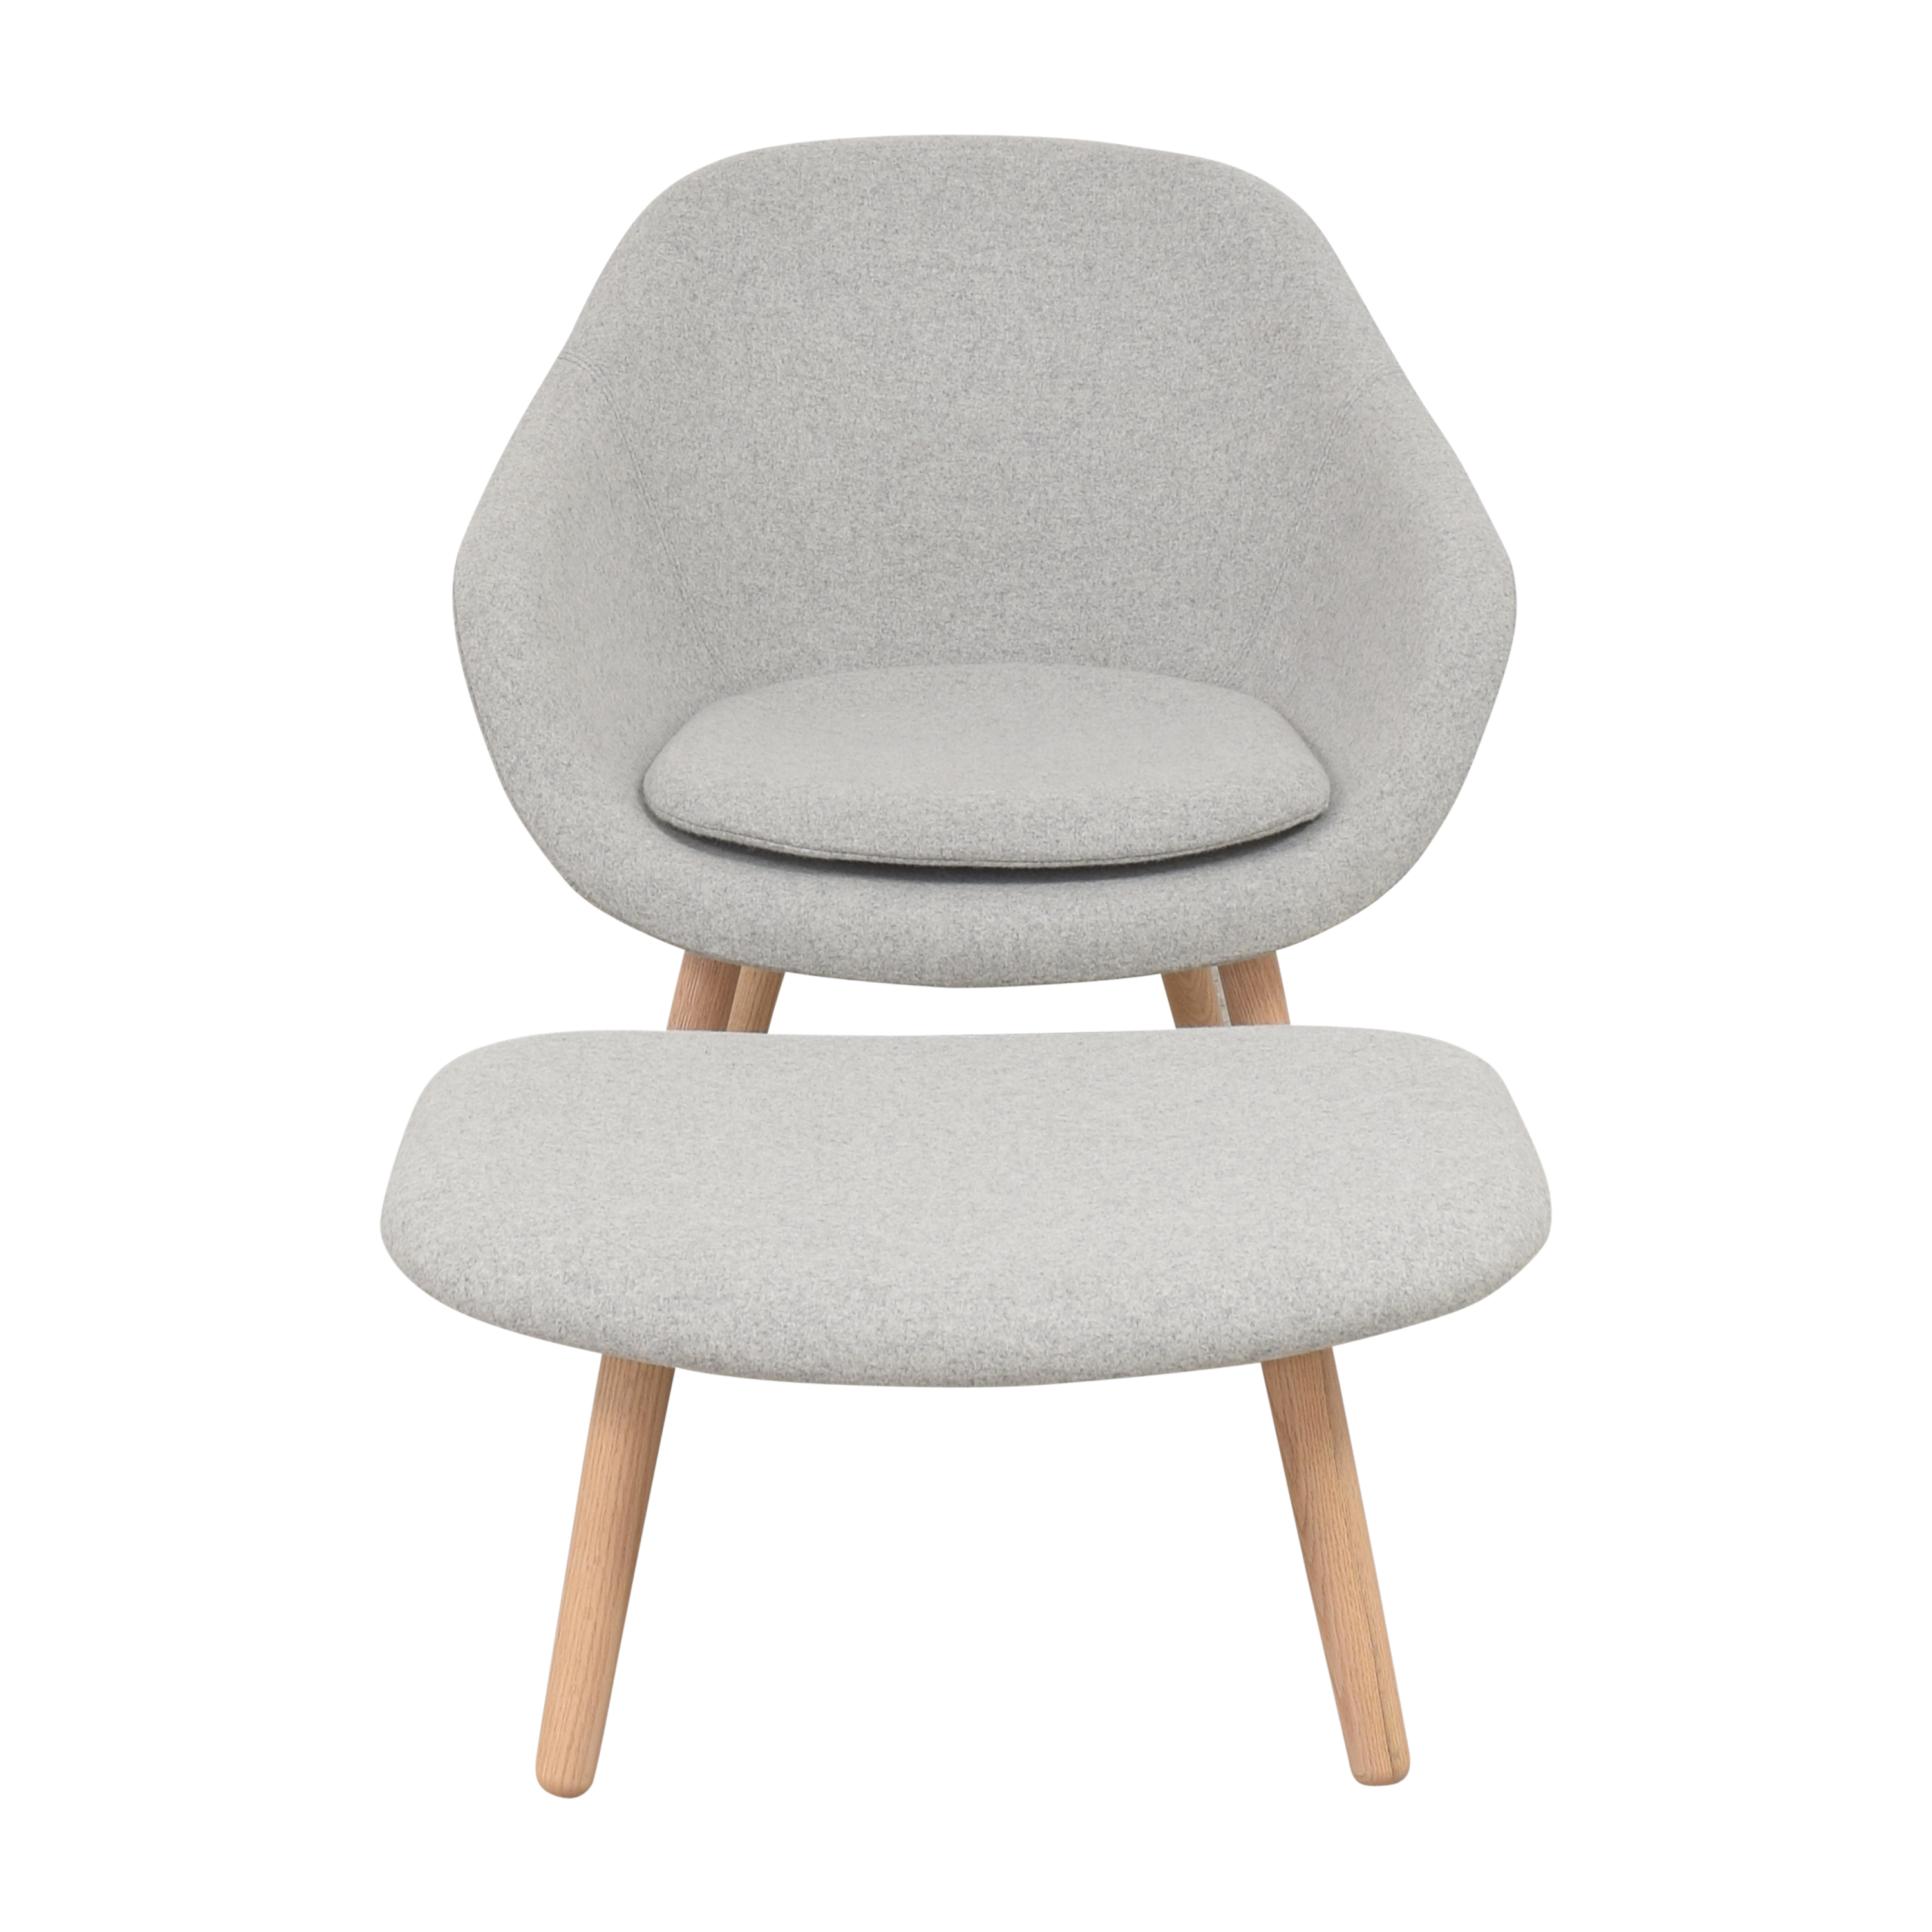 Hay Hay A Lounge 82 Arm Chair with Ottoman gray